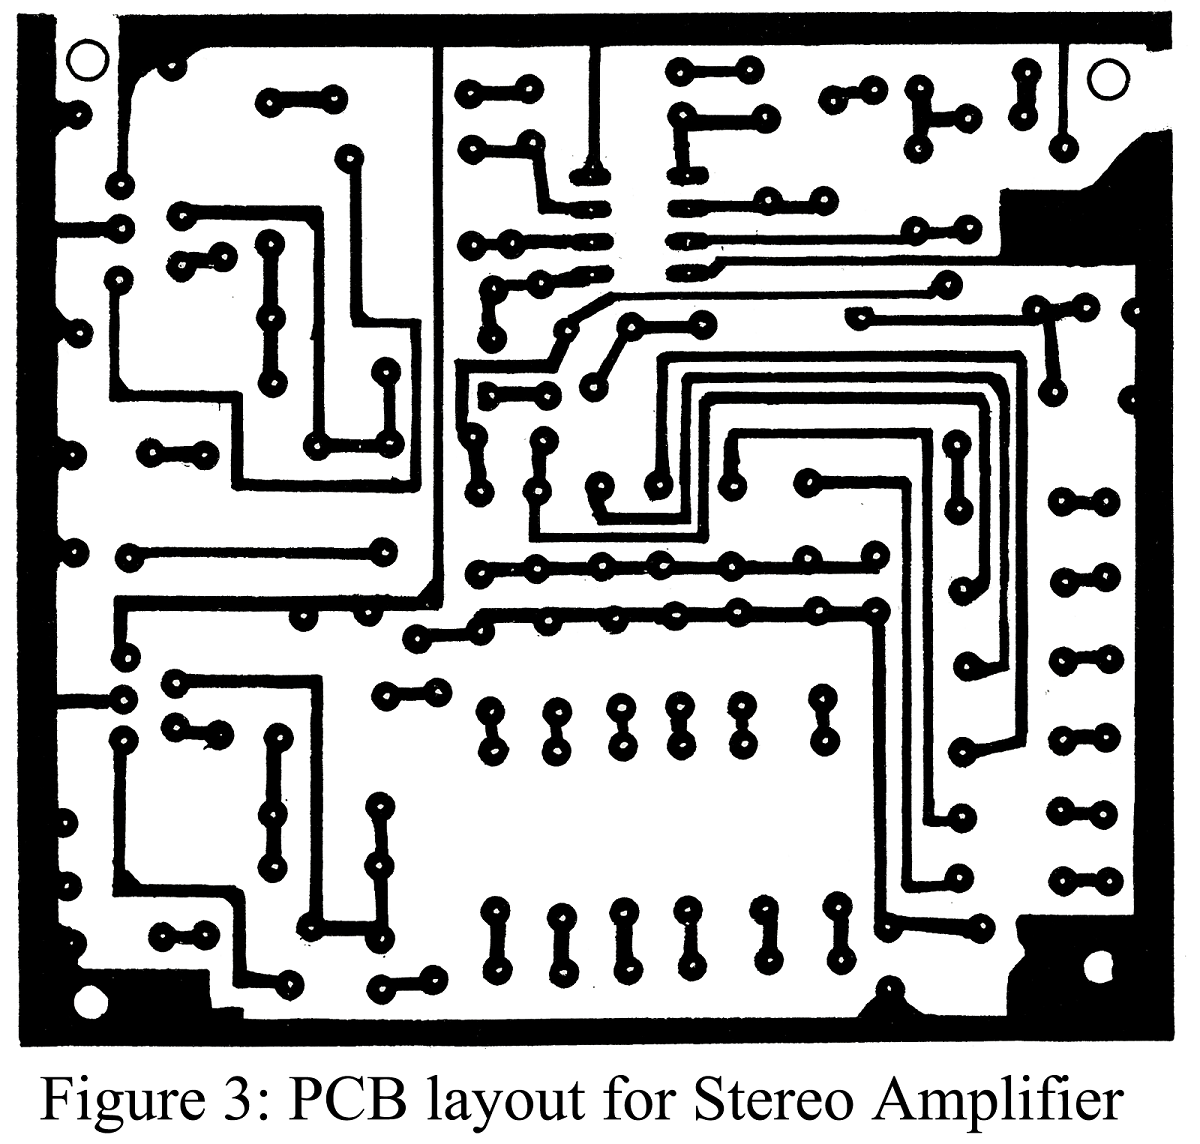 pcb design for stereo amplifier